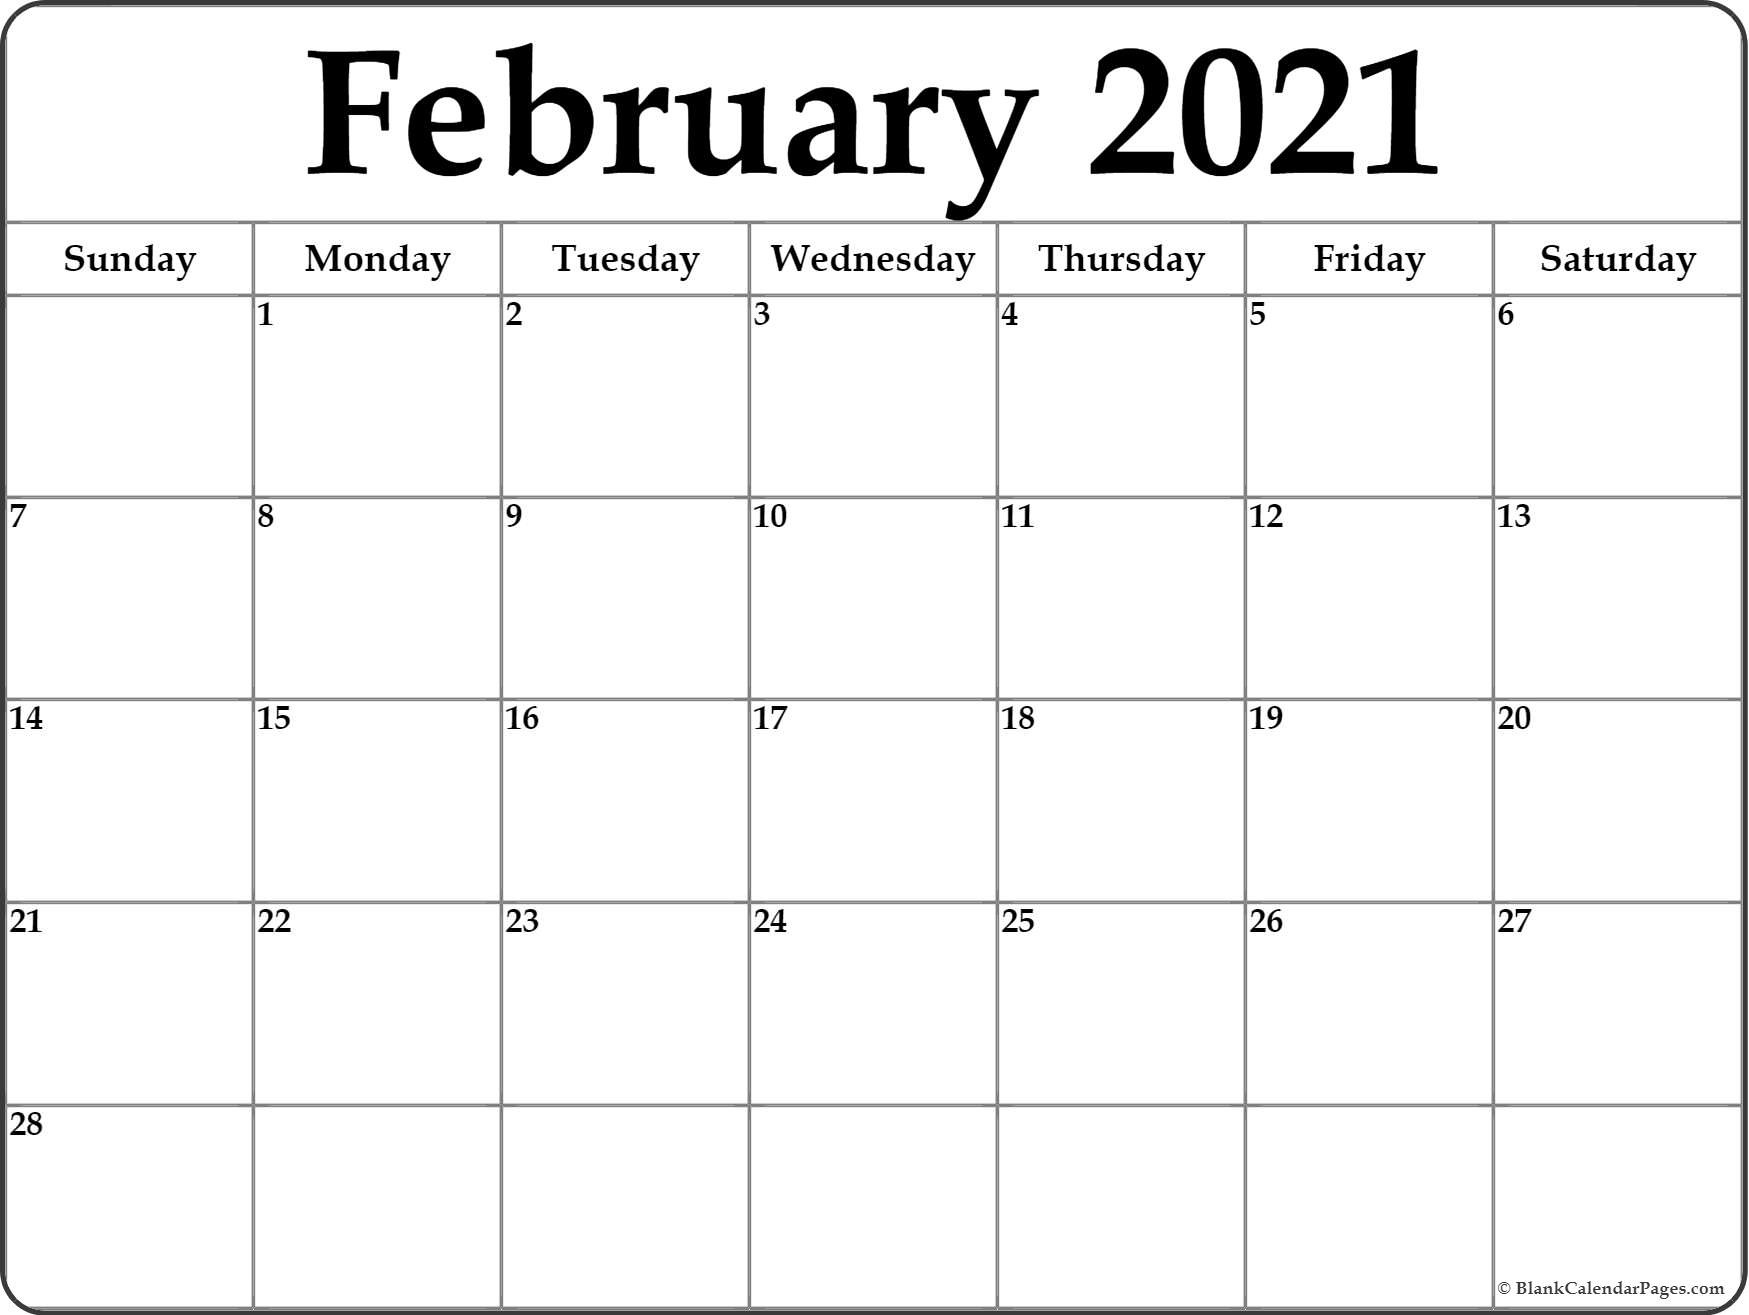 February 2021 Calendar | Free Printable Monthly Calendars  Printable Calendar Monthly 2021 Free